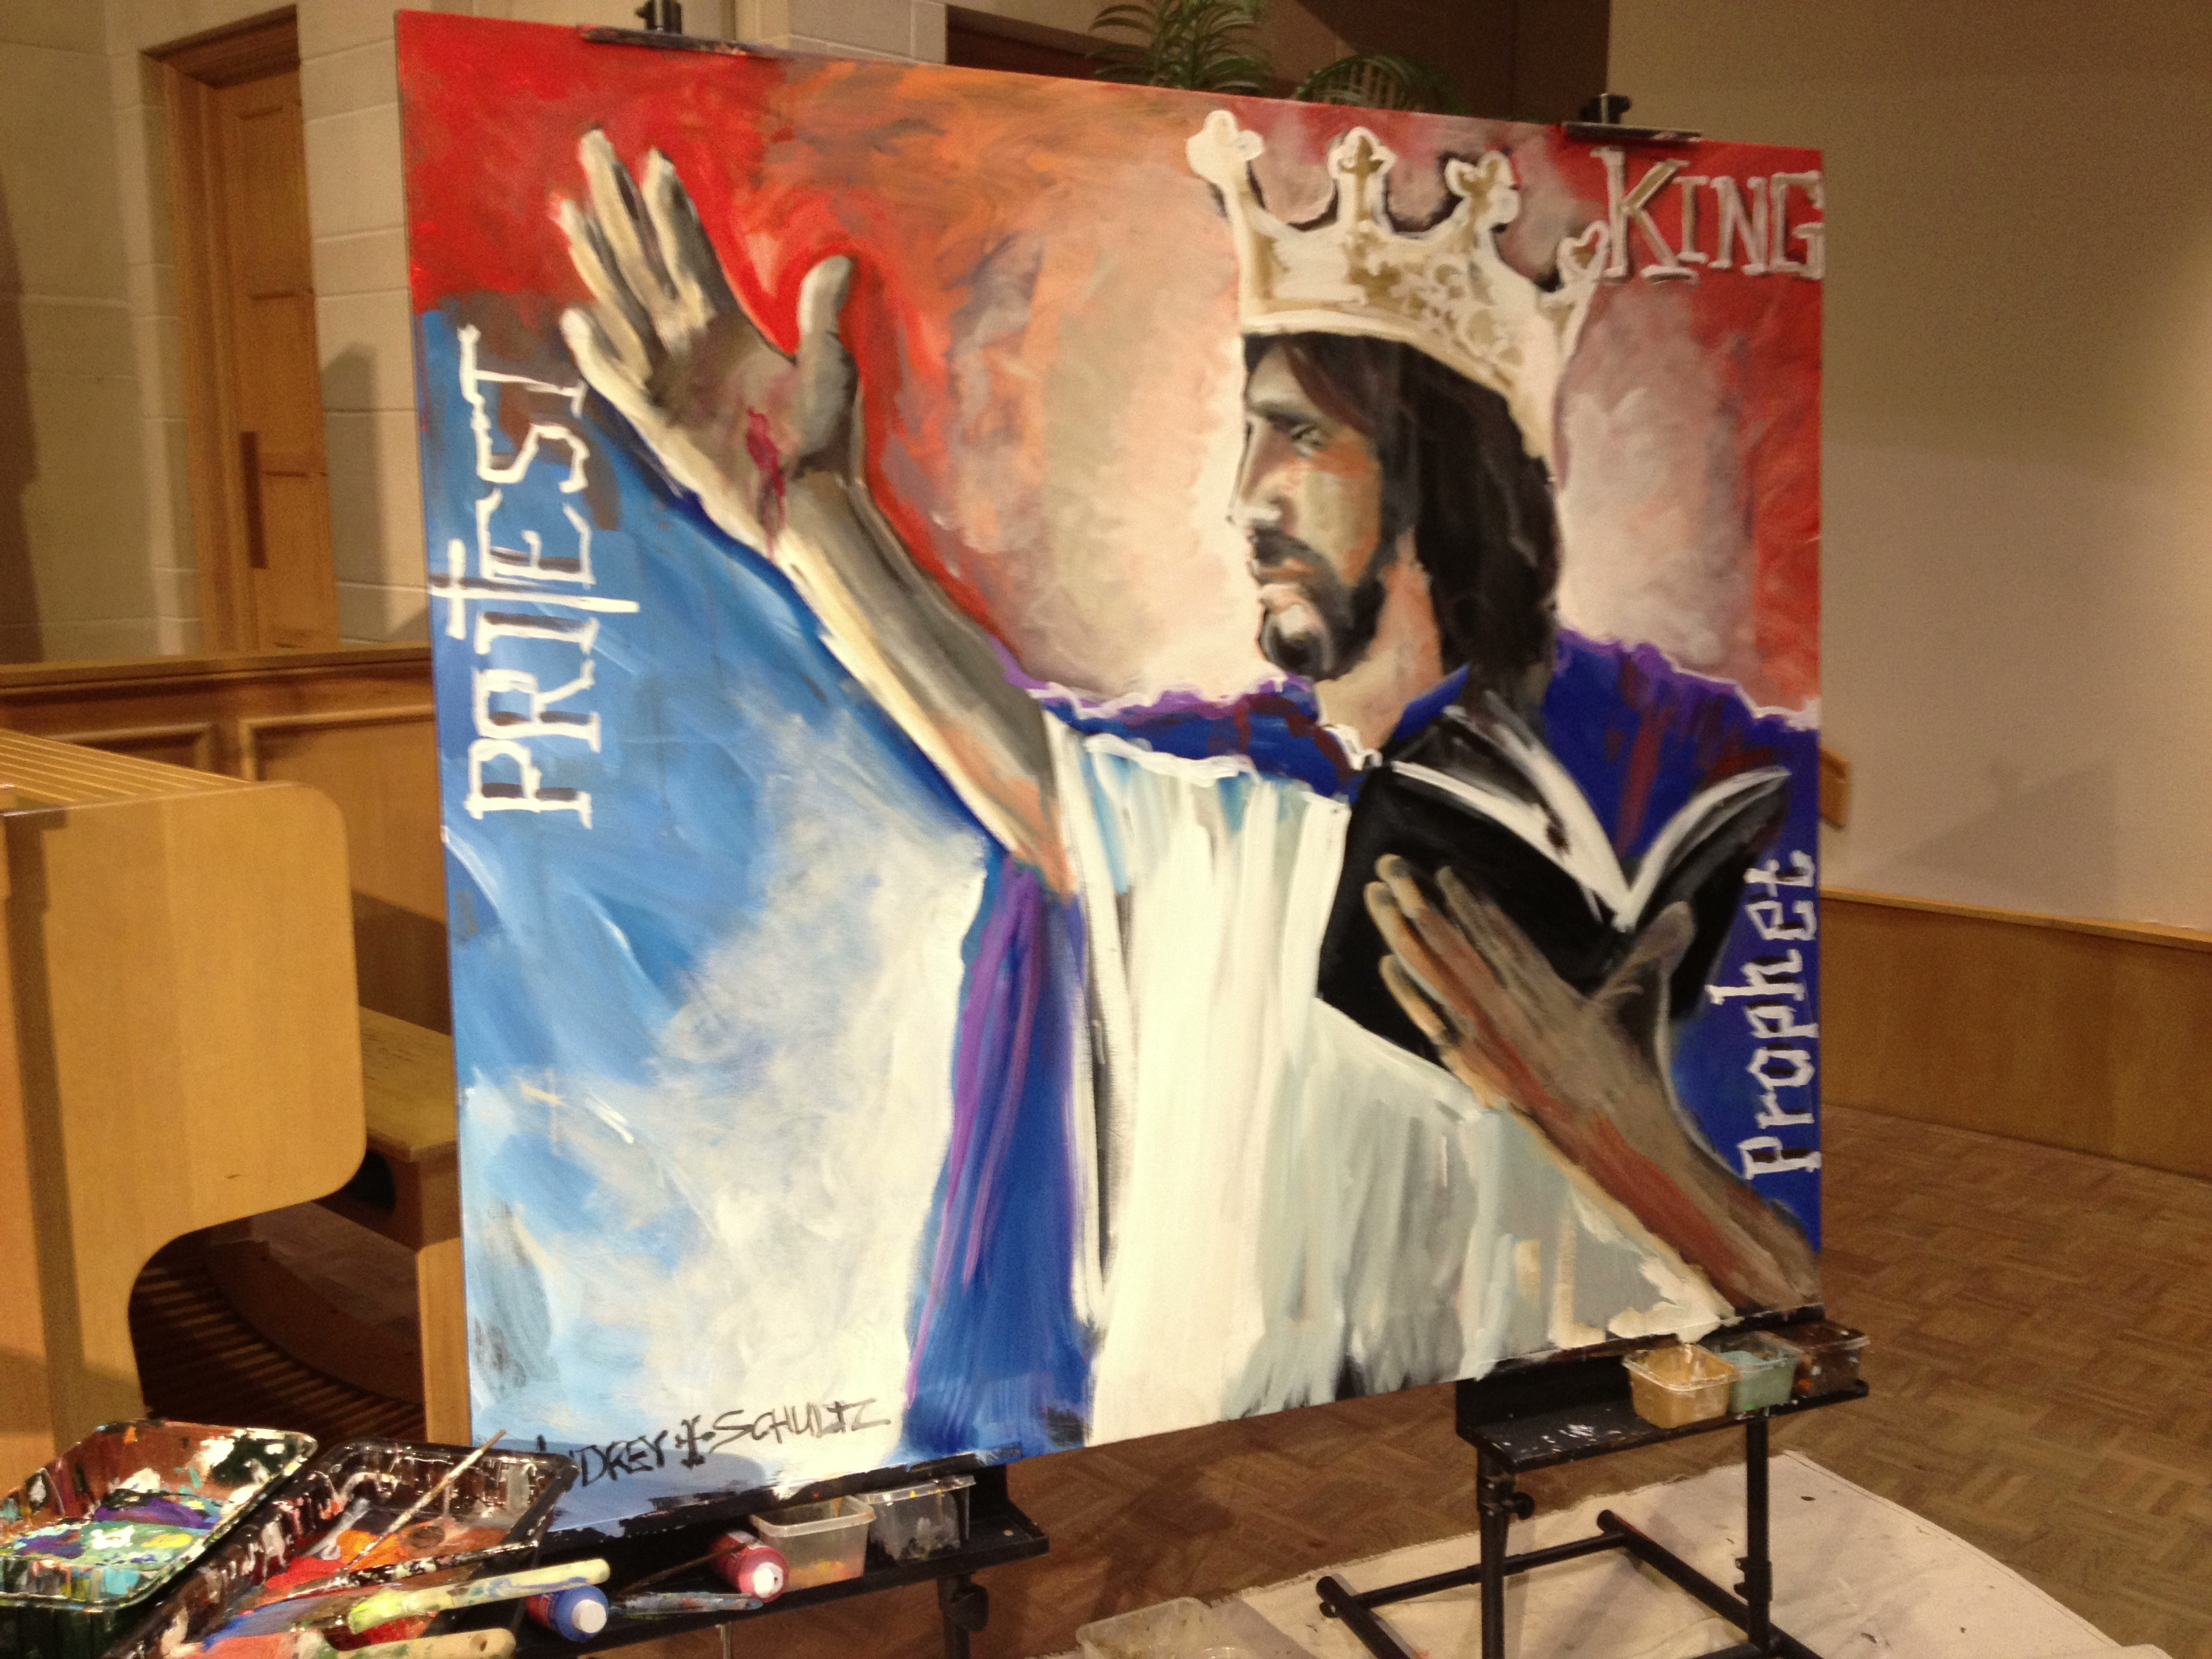 This piece was created live during our services by artist Audrey Schultz